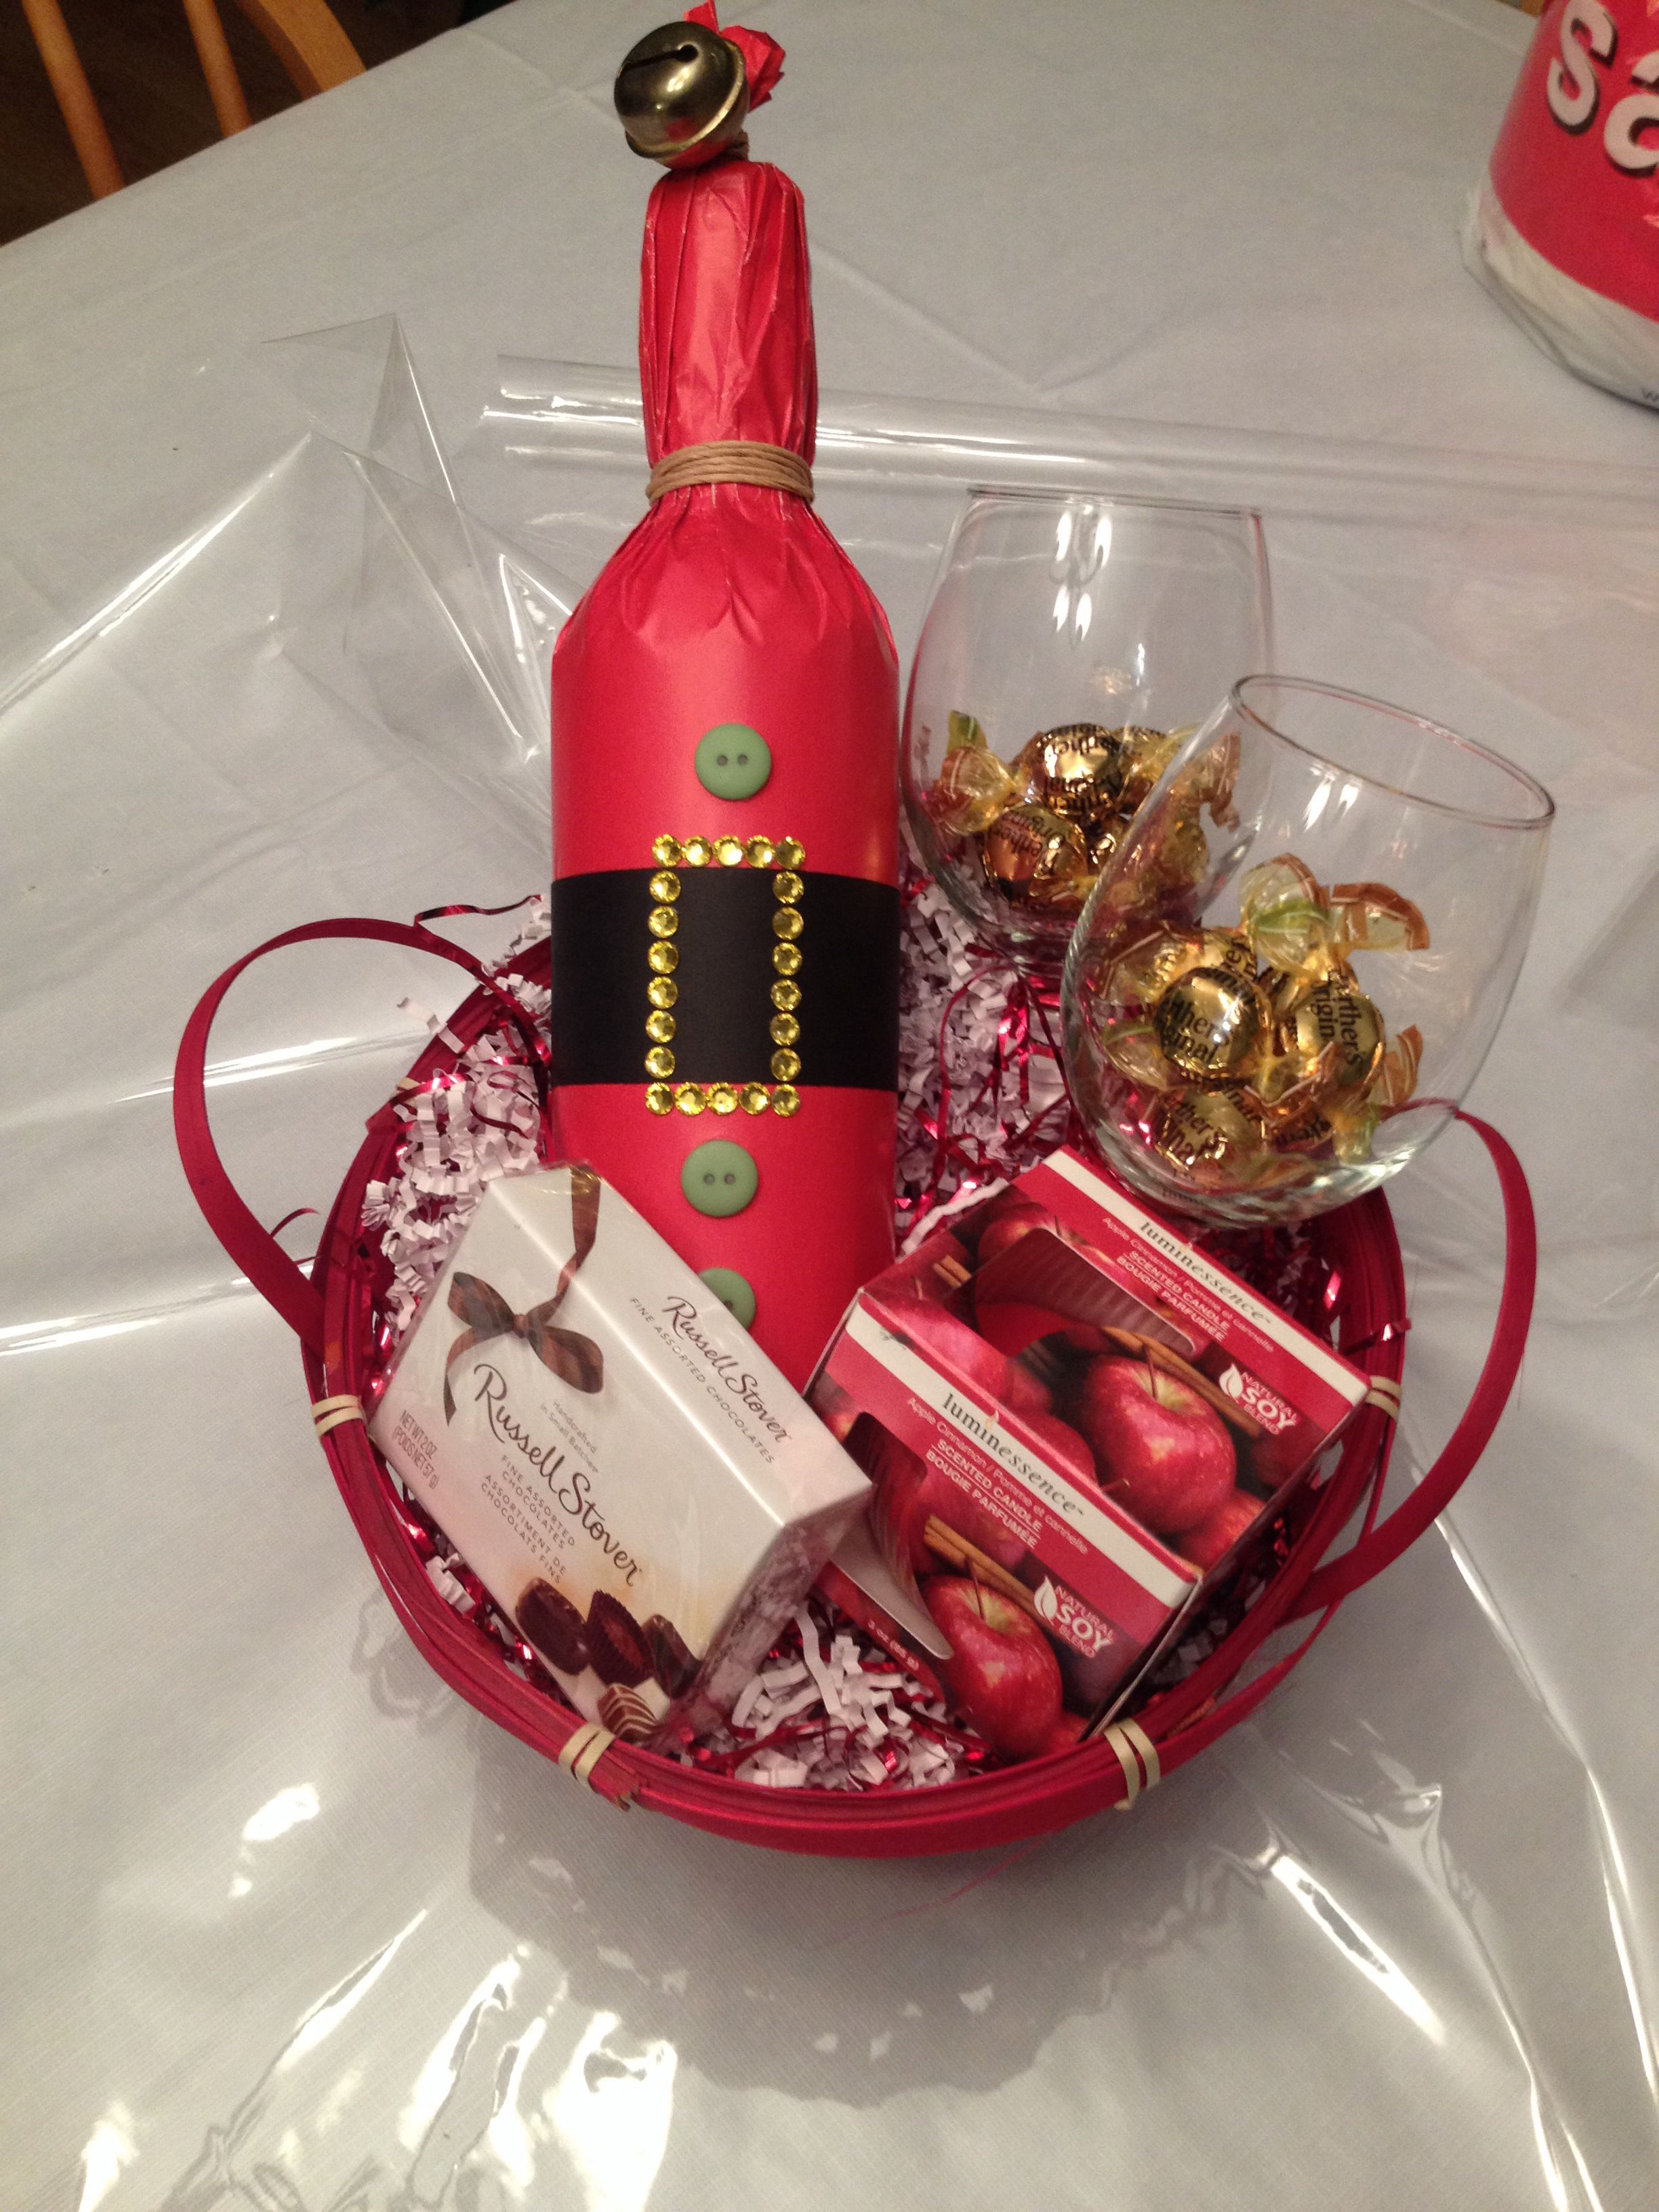 Gift Basket For Two Includes Bottle Of Wine Santa Wrap 2 Wine Glasses Candle And Some Chocolates Candy Wine Bottle Bottle Chocolate Candy